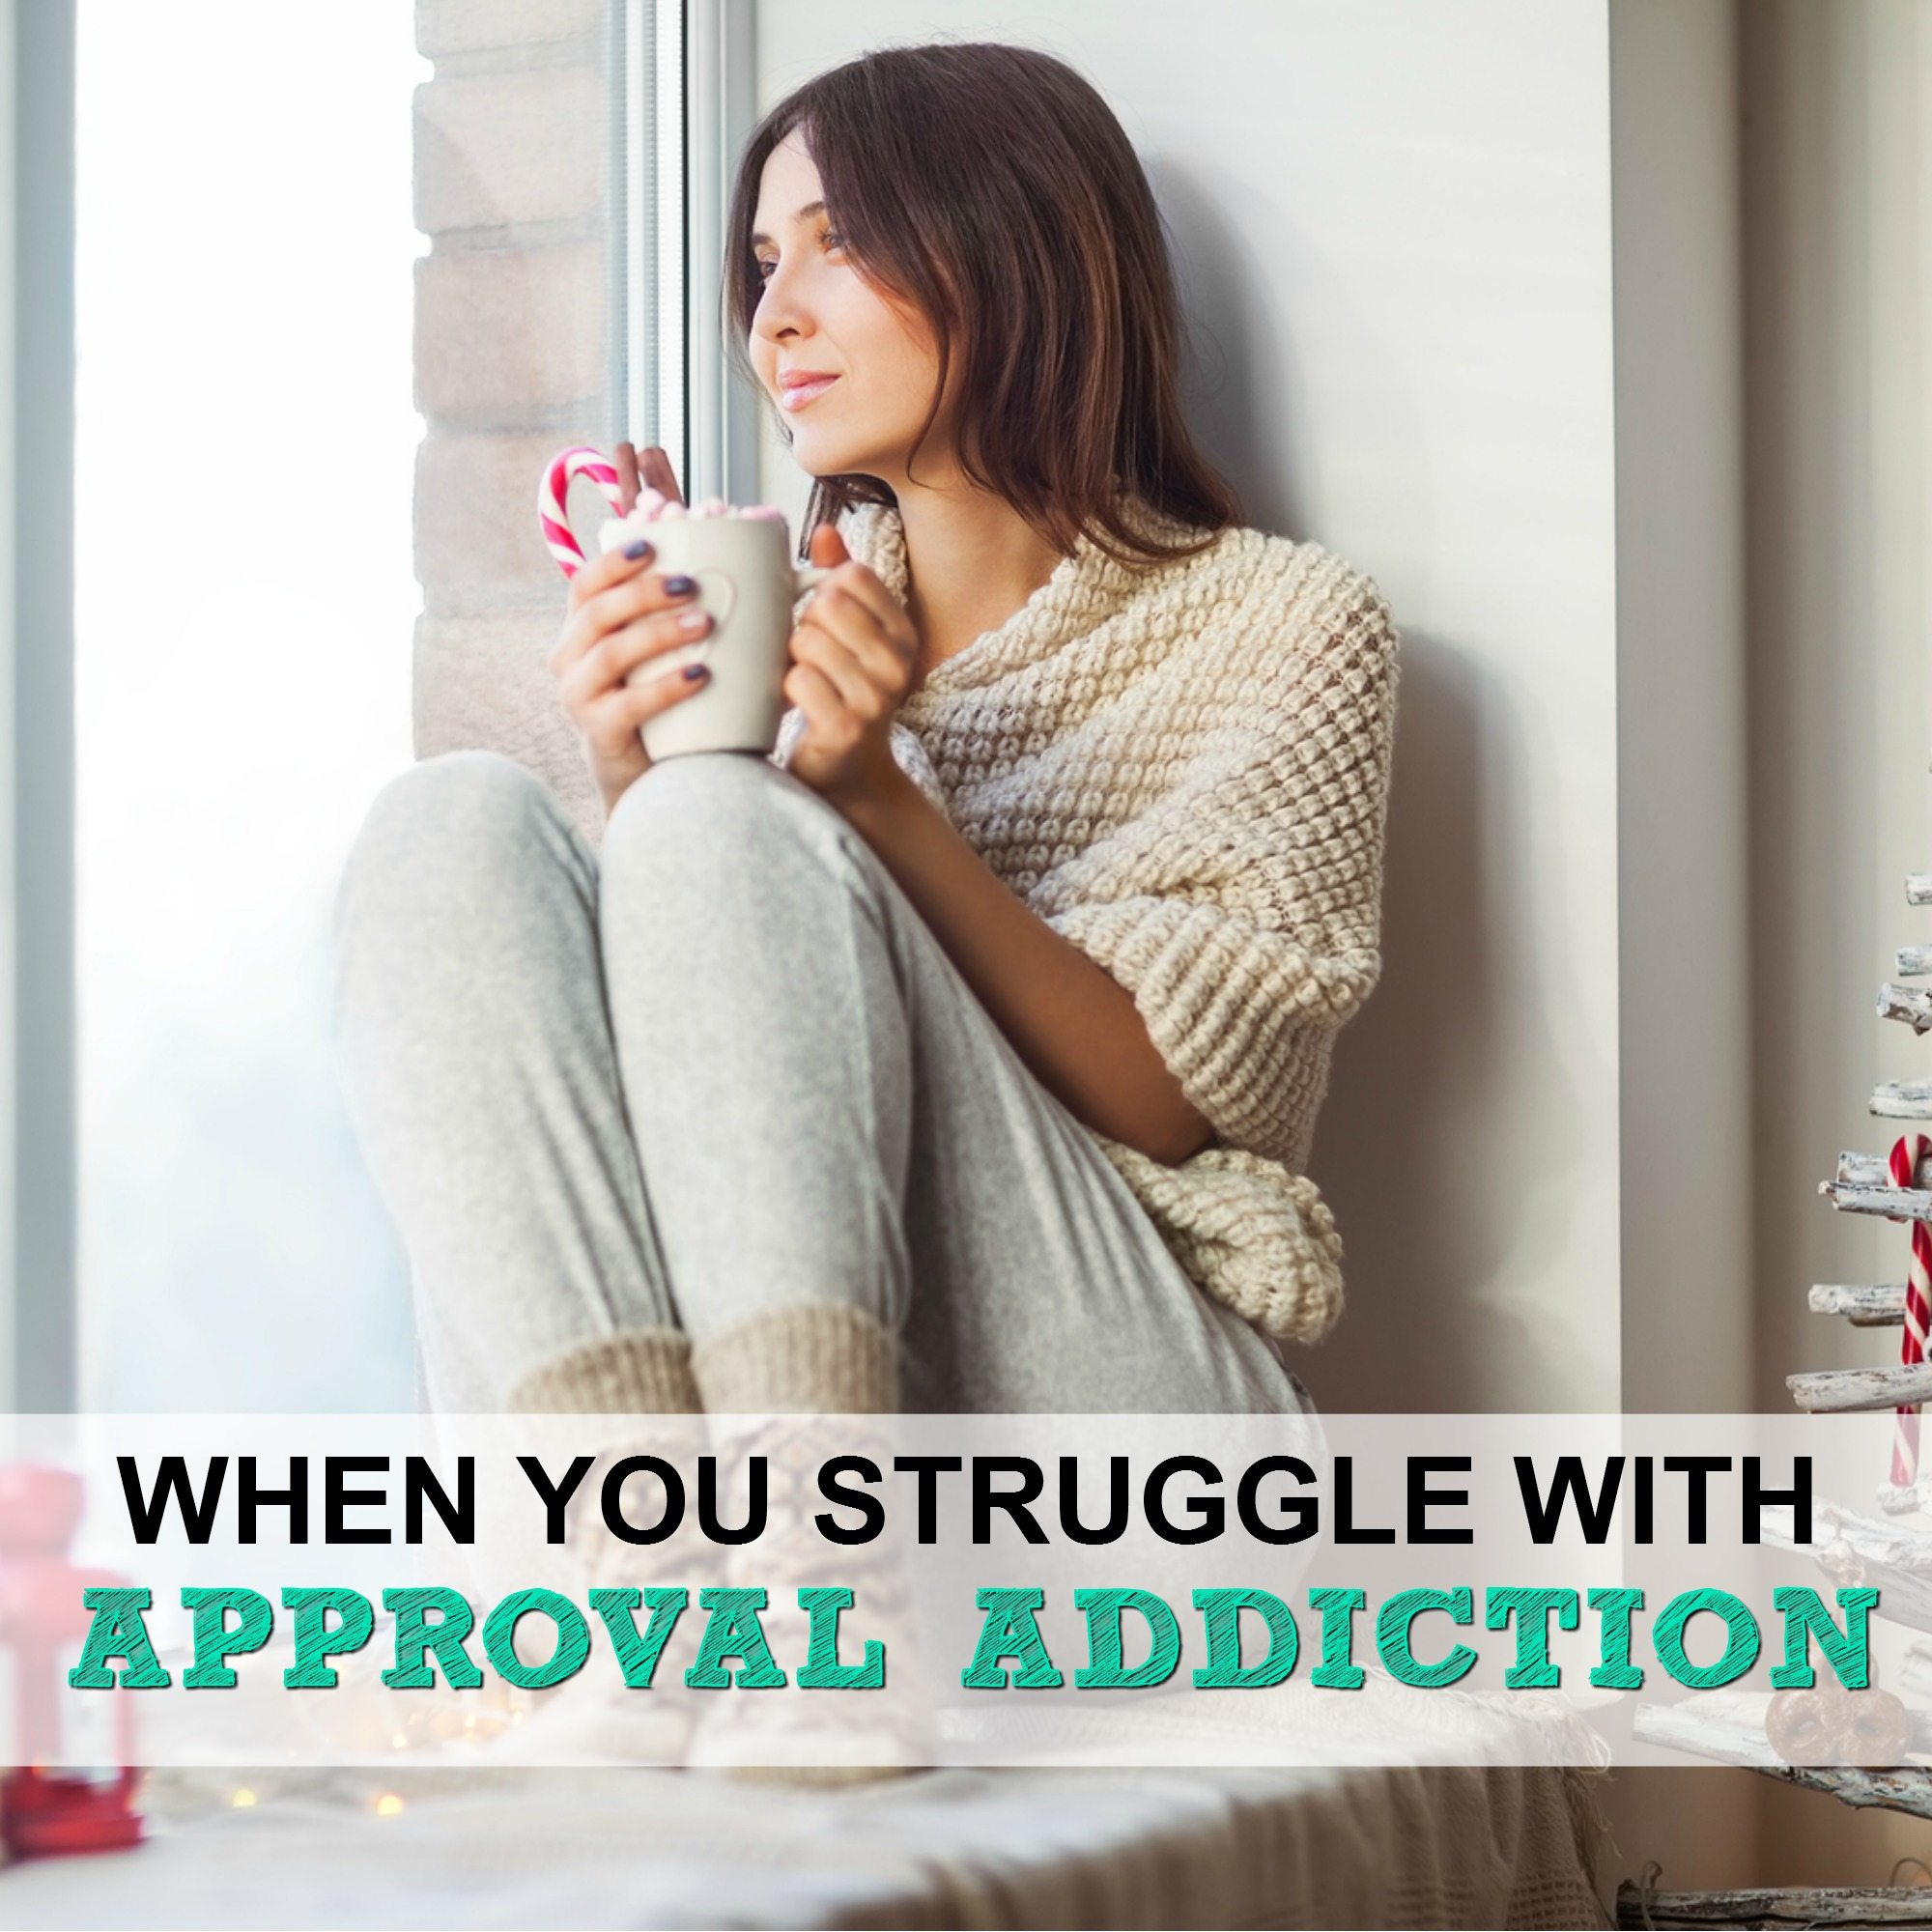 When you struggle with approval addiction